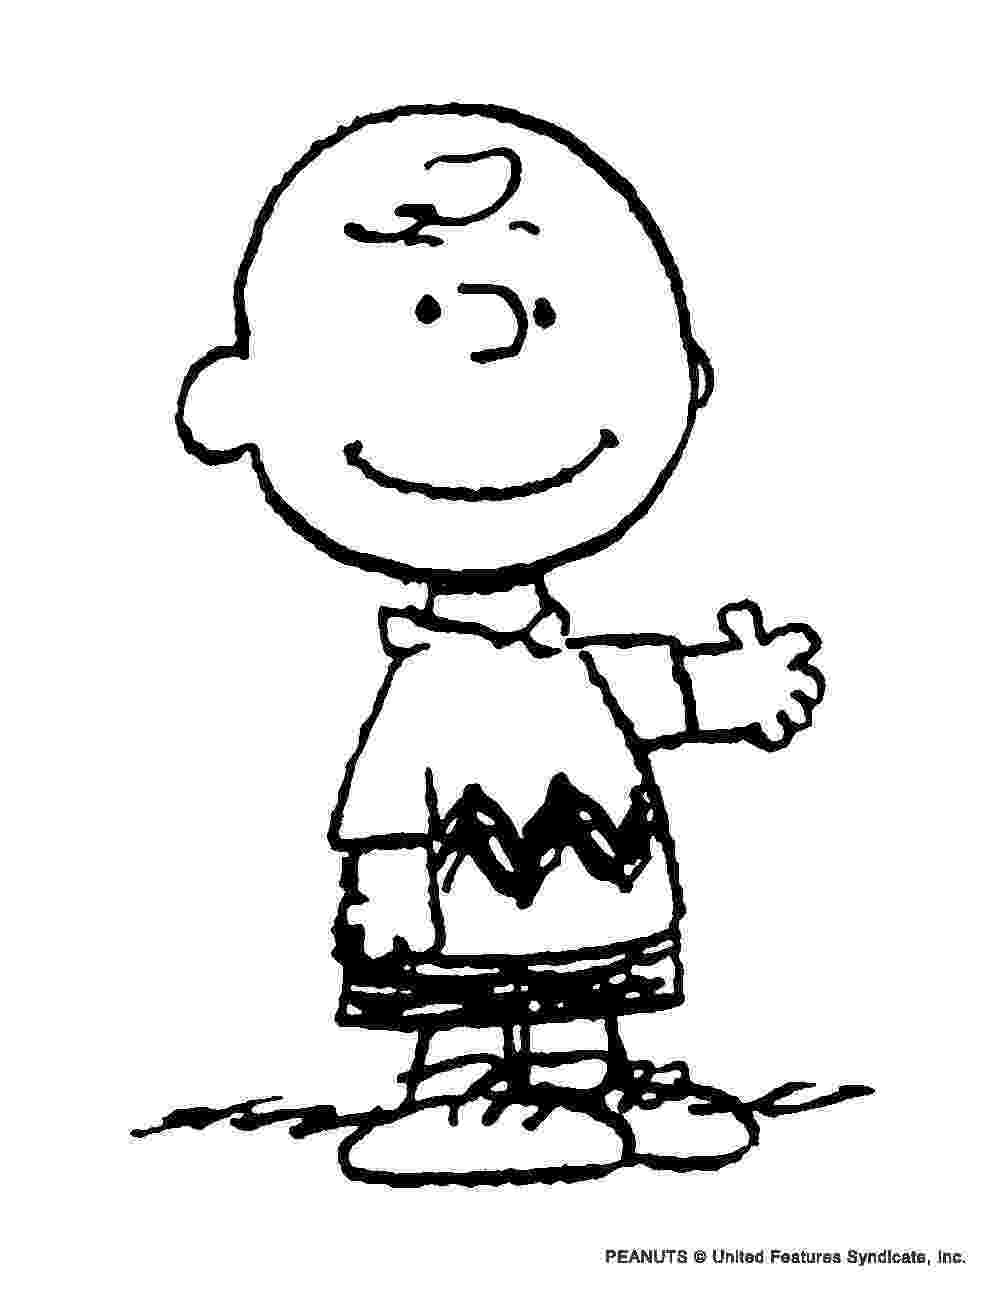 peanuts characters coloring pages peanuts christmas coloring page printable coloring pages pages peanuts characters coloring